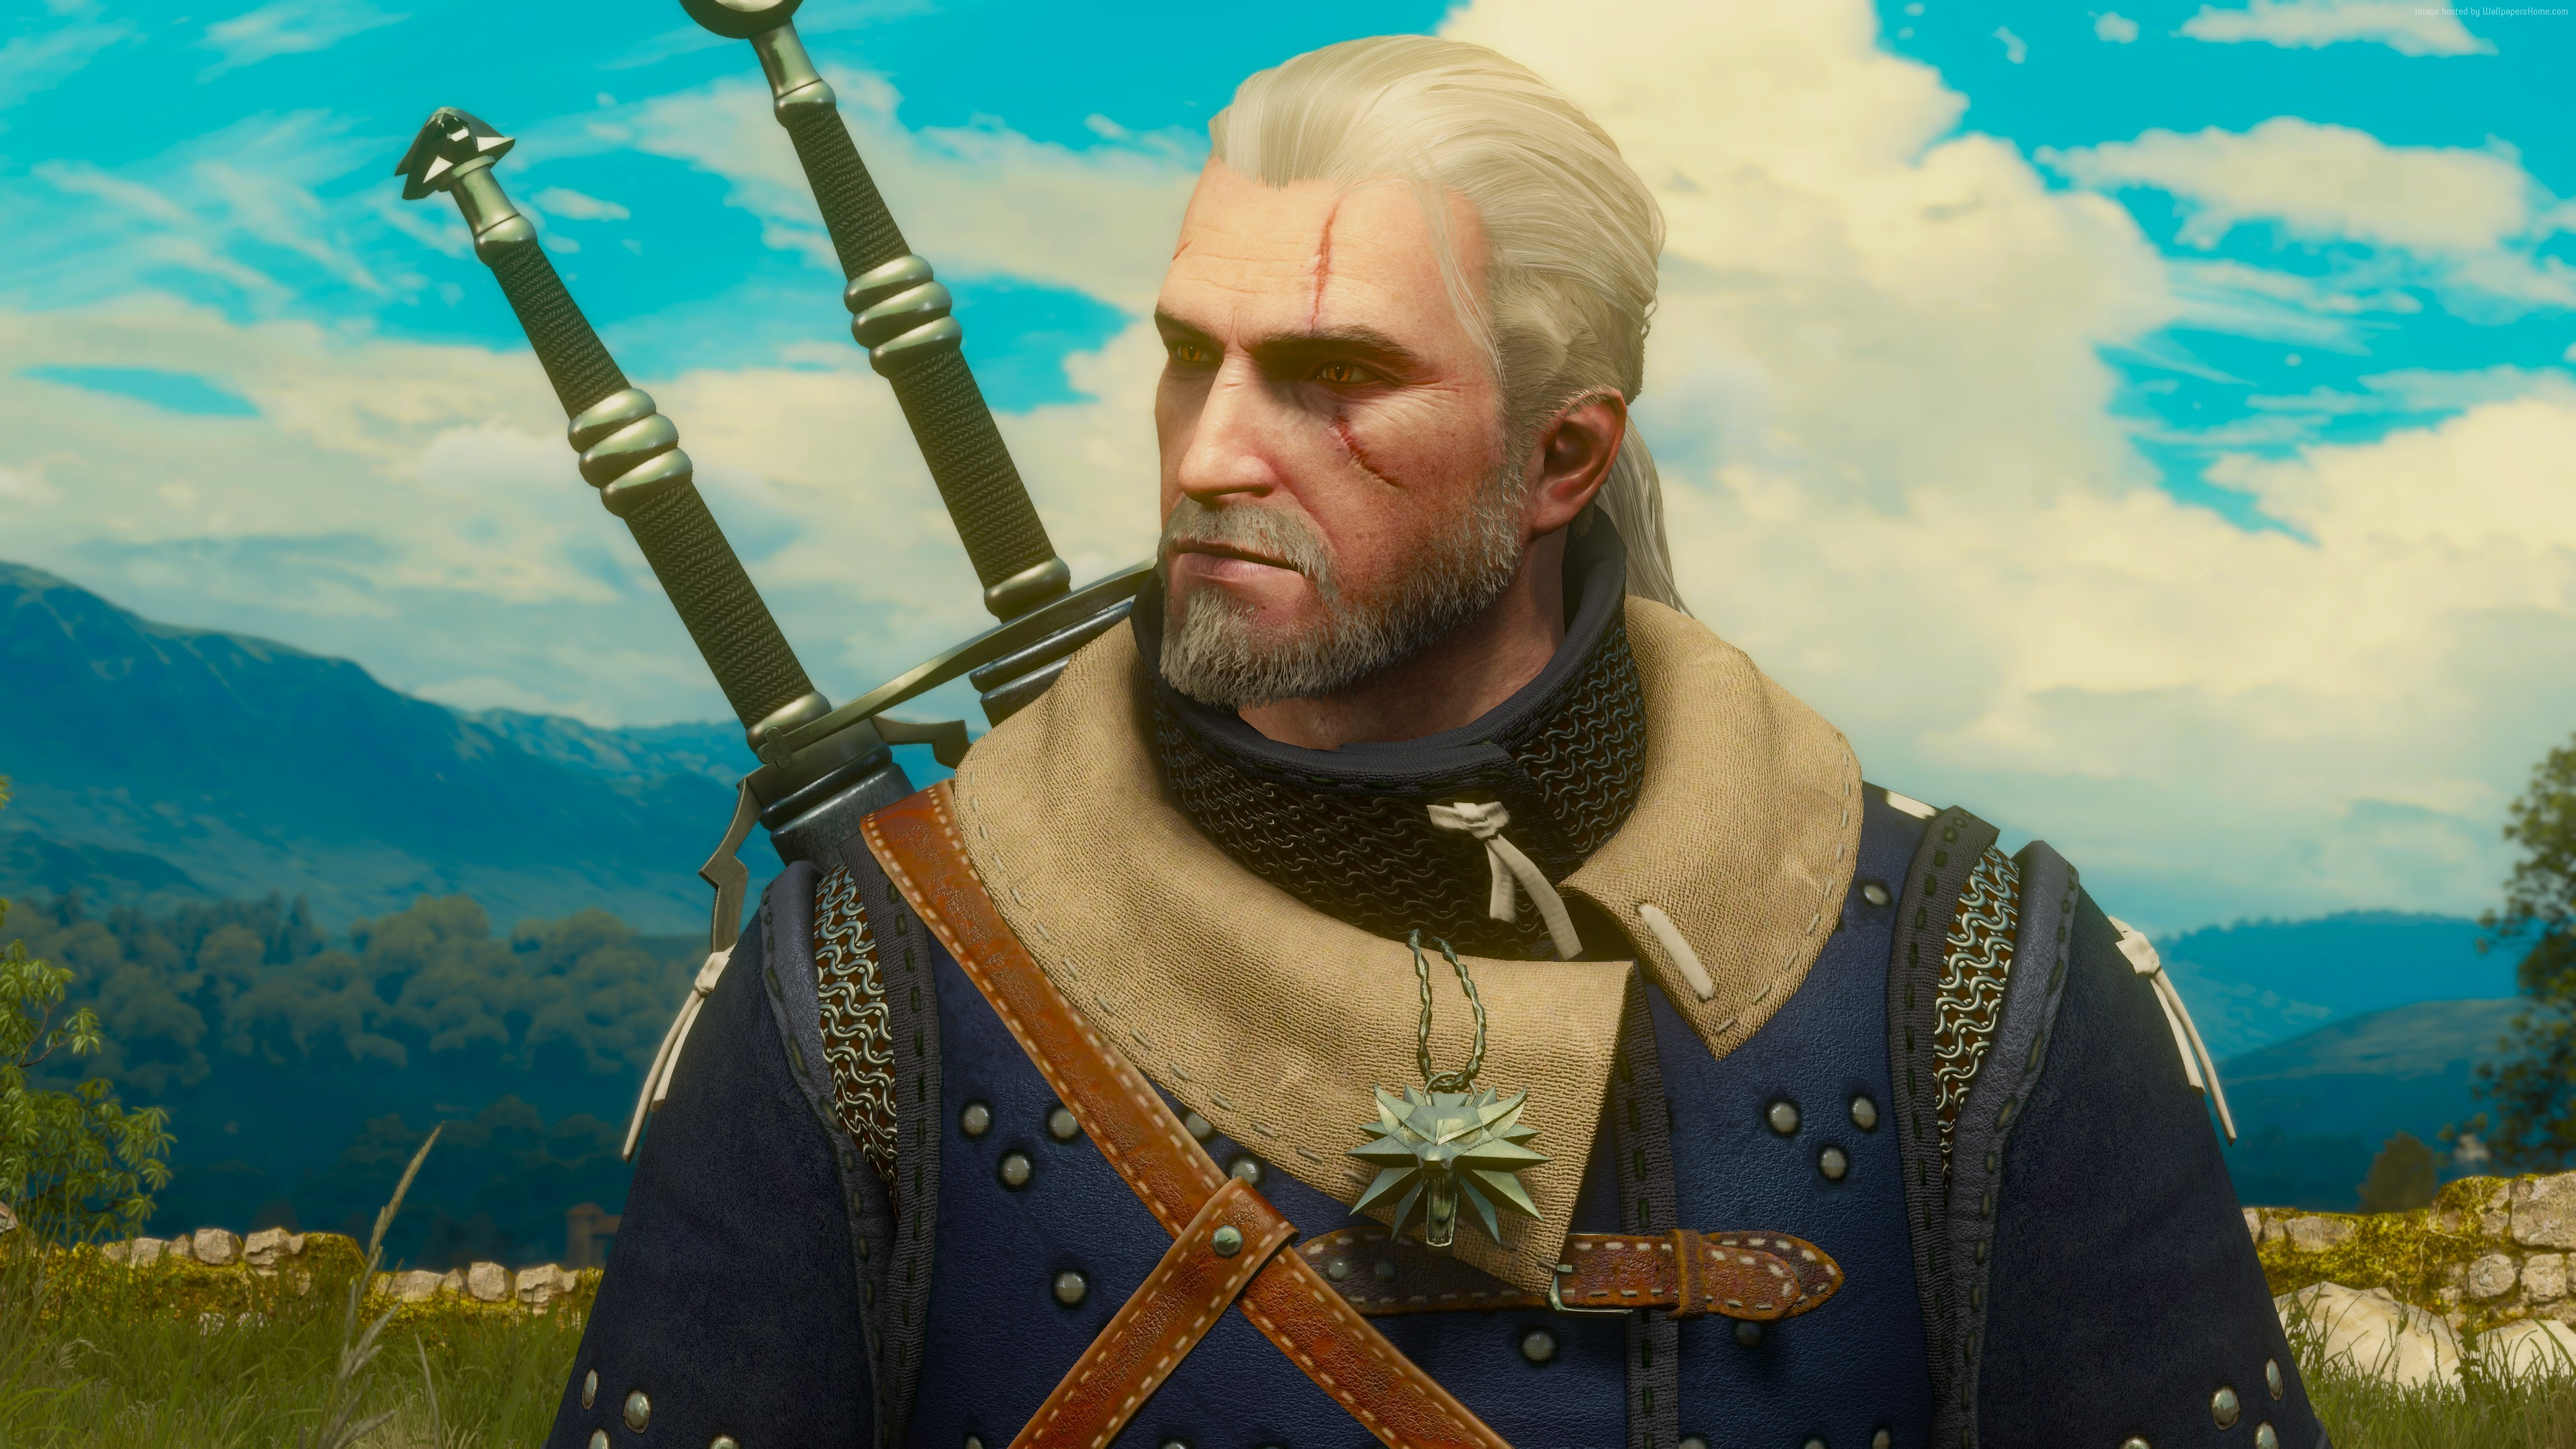 the witcher 3 art 2 1536010156 - The Witcher 3 Art 2 - xbox games wallpapers, the witcher 3 wallpapers, ps4 games wallpapers, pc games wallpapers, games wallpapers, art wallpapers